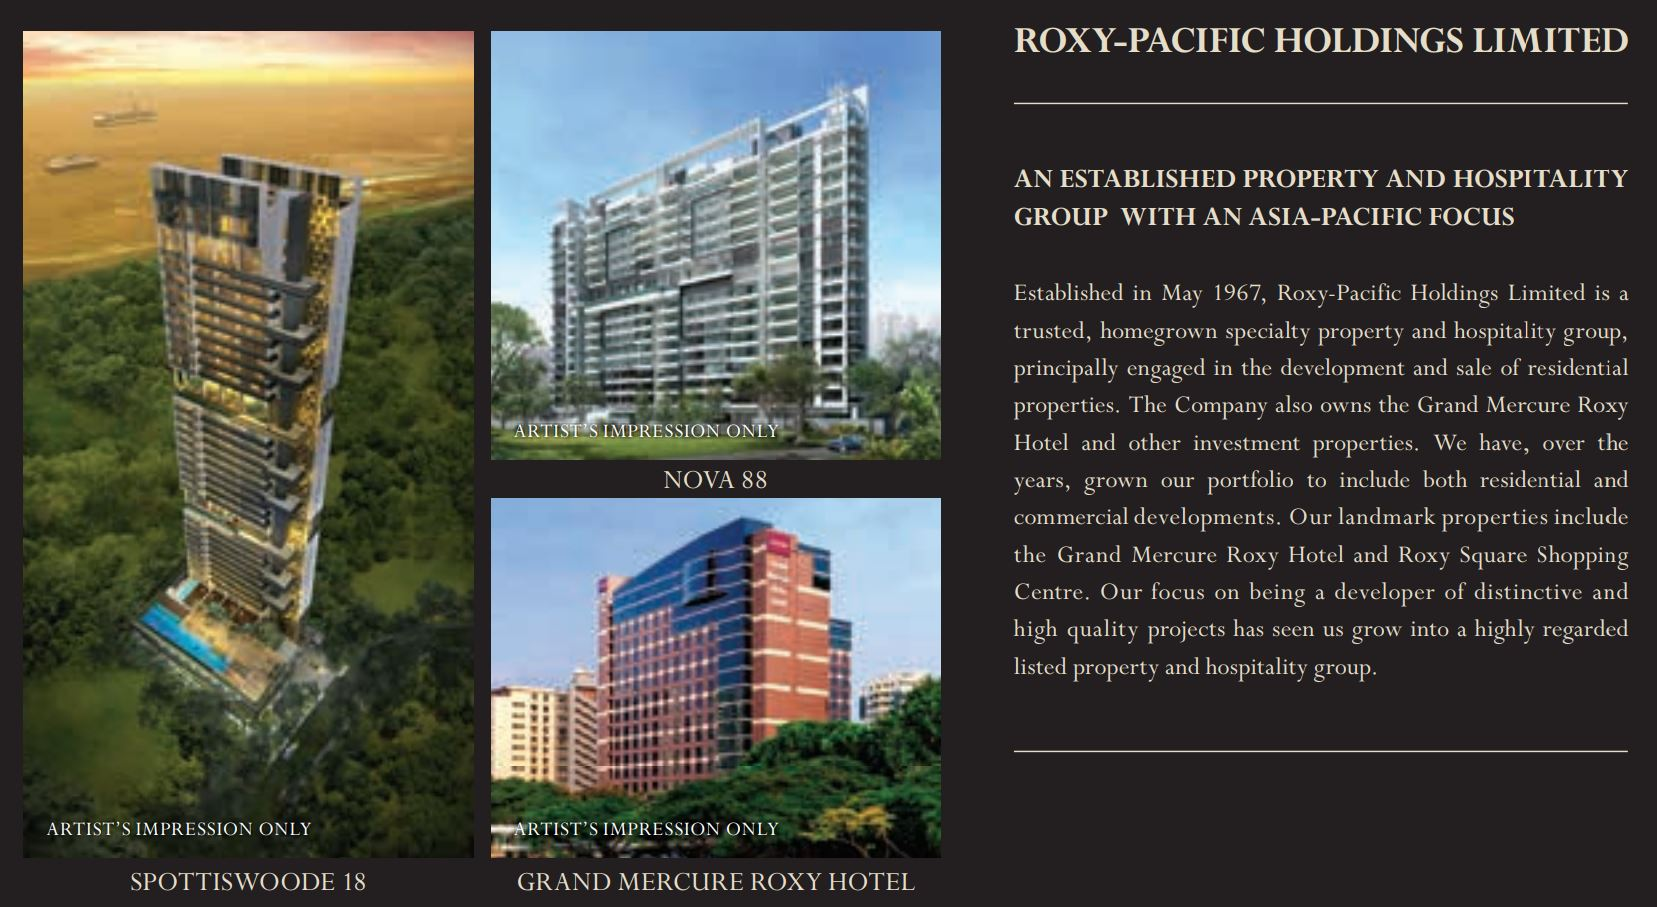 Roxy Pacific Holdings Limited